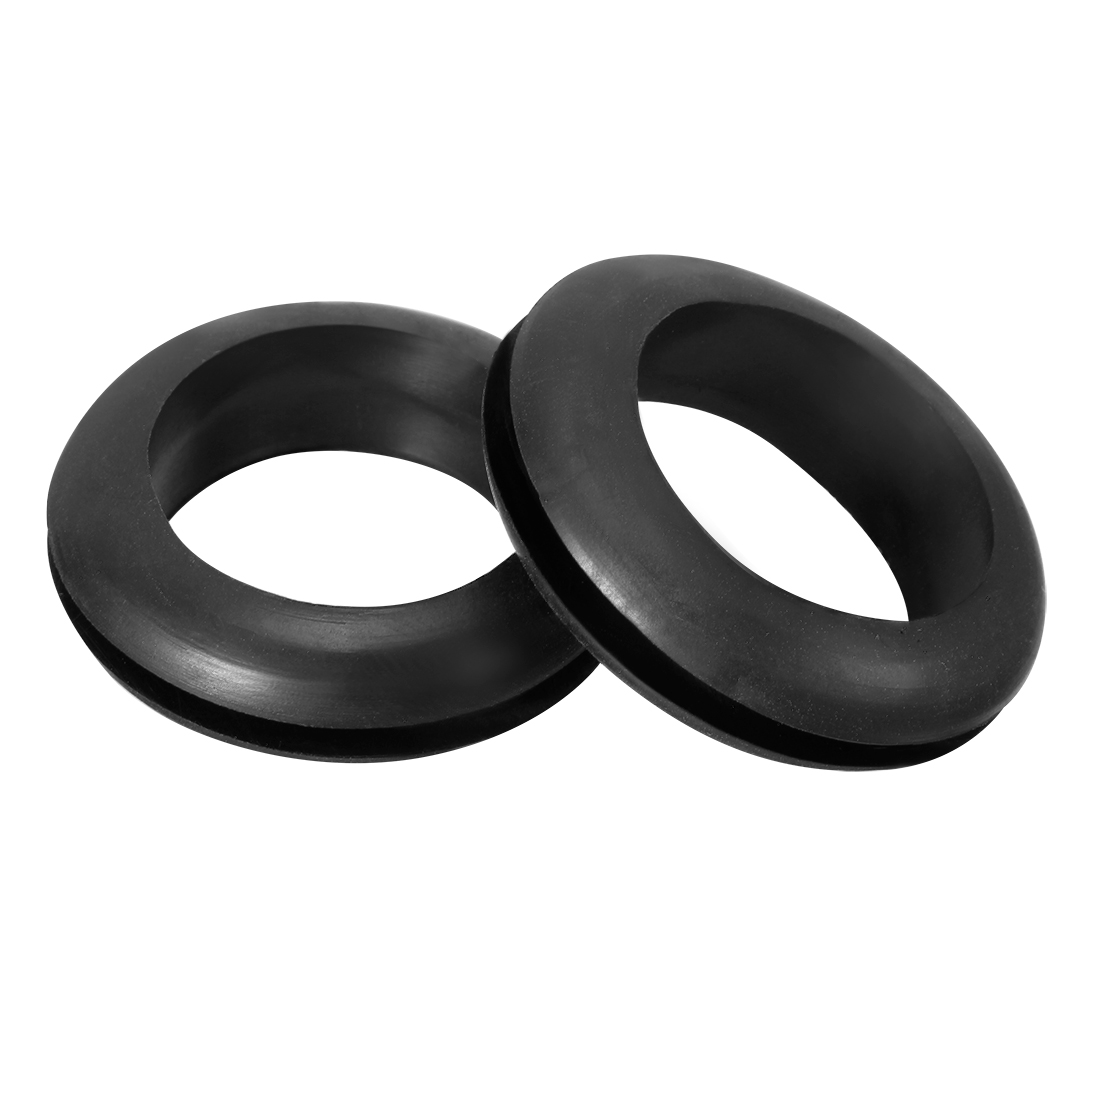 Wire Protector Oil Resistant Armature Rubber Grommet 22mm Mounting 200Pcs Black